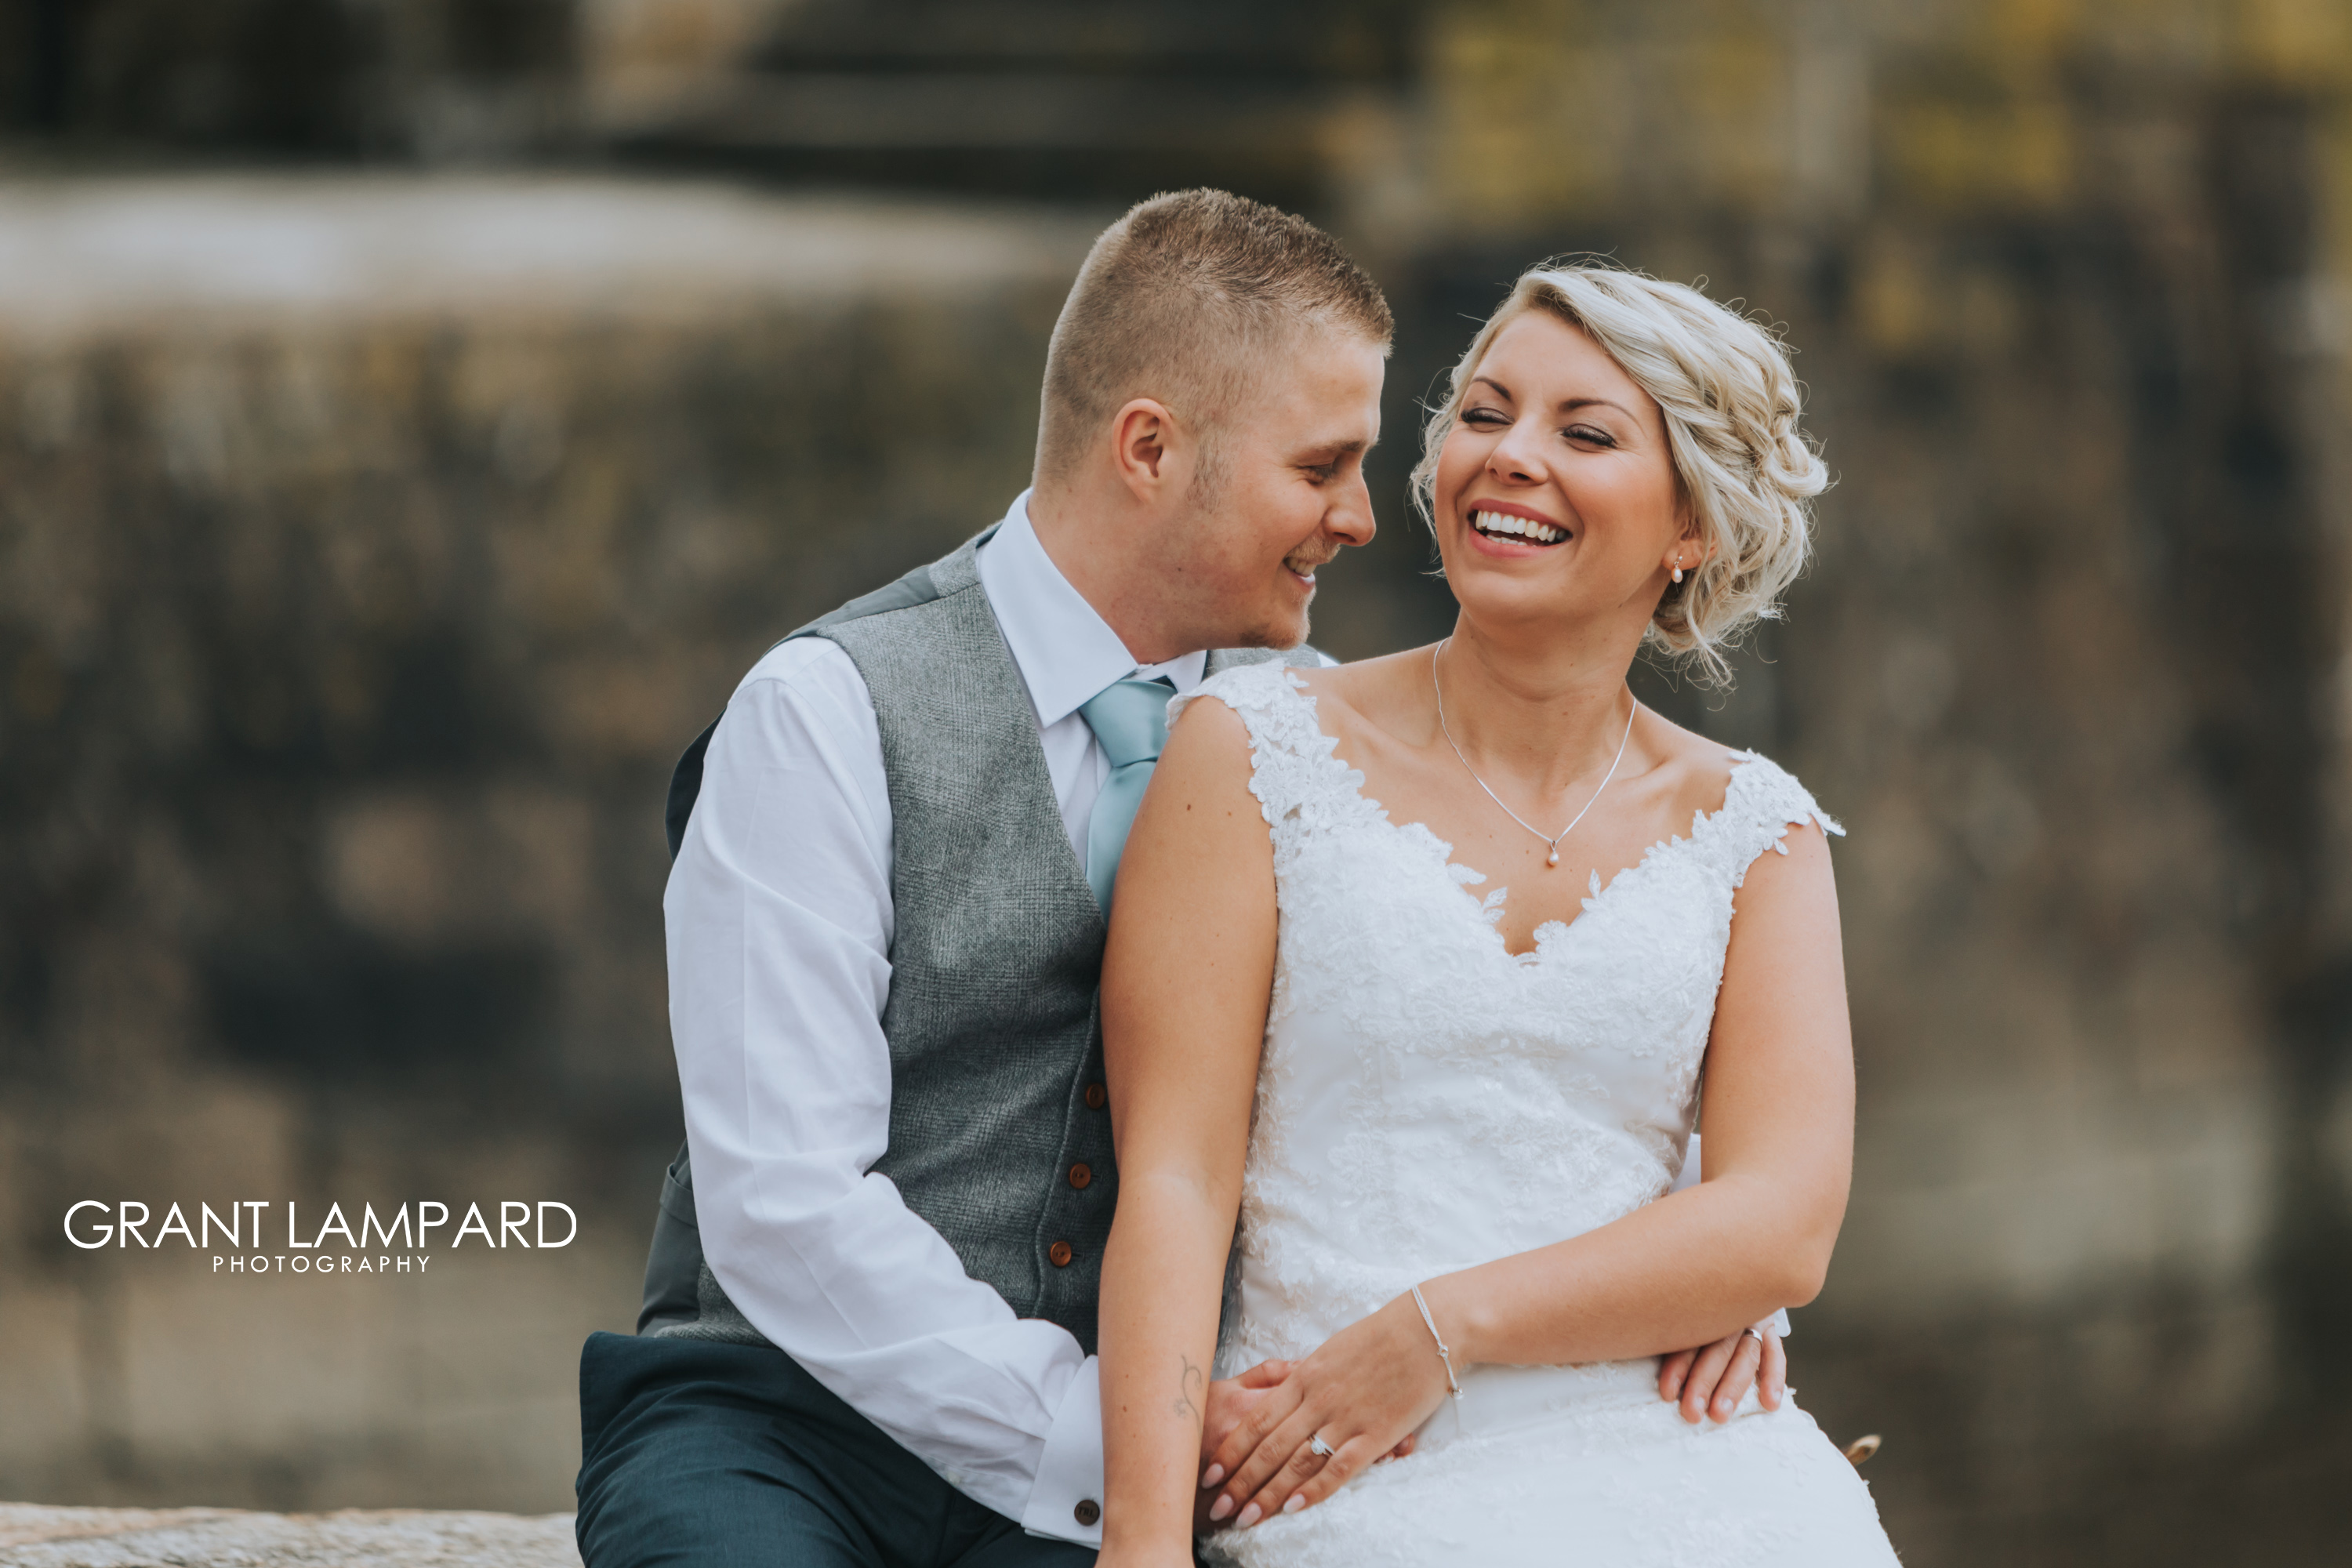 Wedding Photographers Cornwall - St Mawes Castle - Grant Lampard Photography